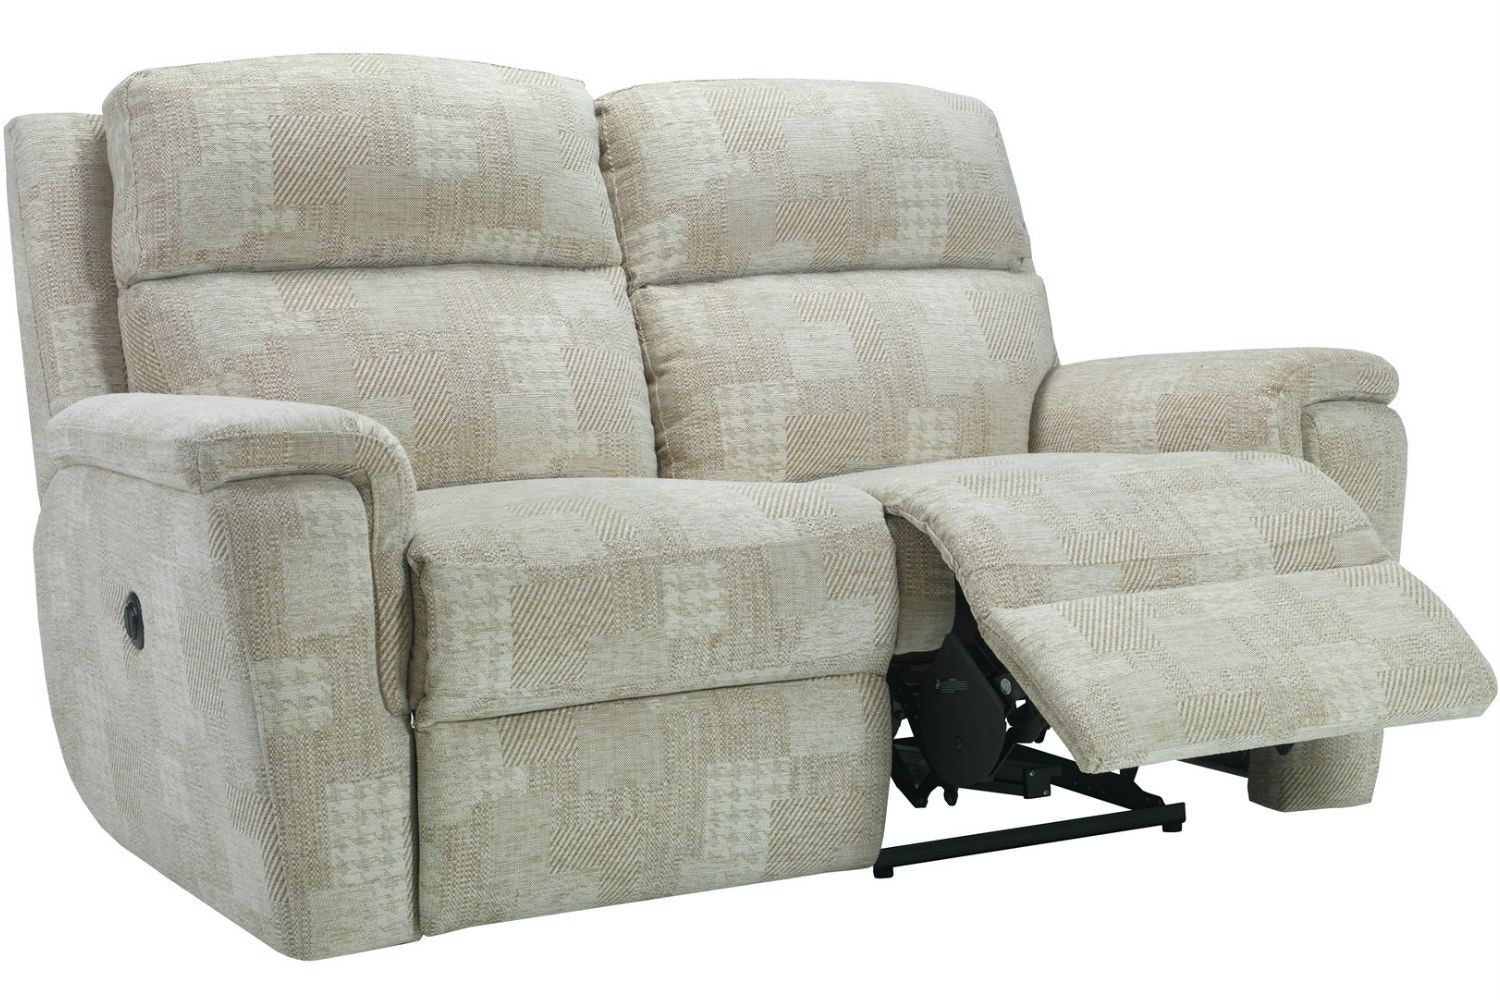 Samey 2 Seater Recliner Sofa | Electric